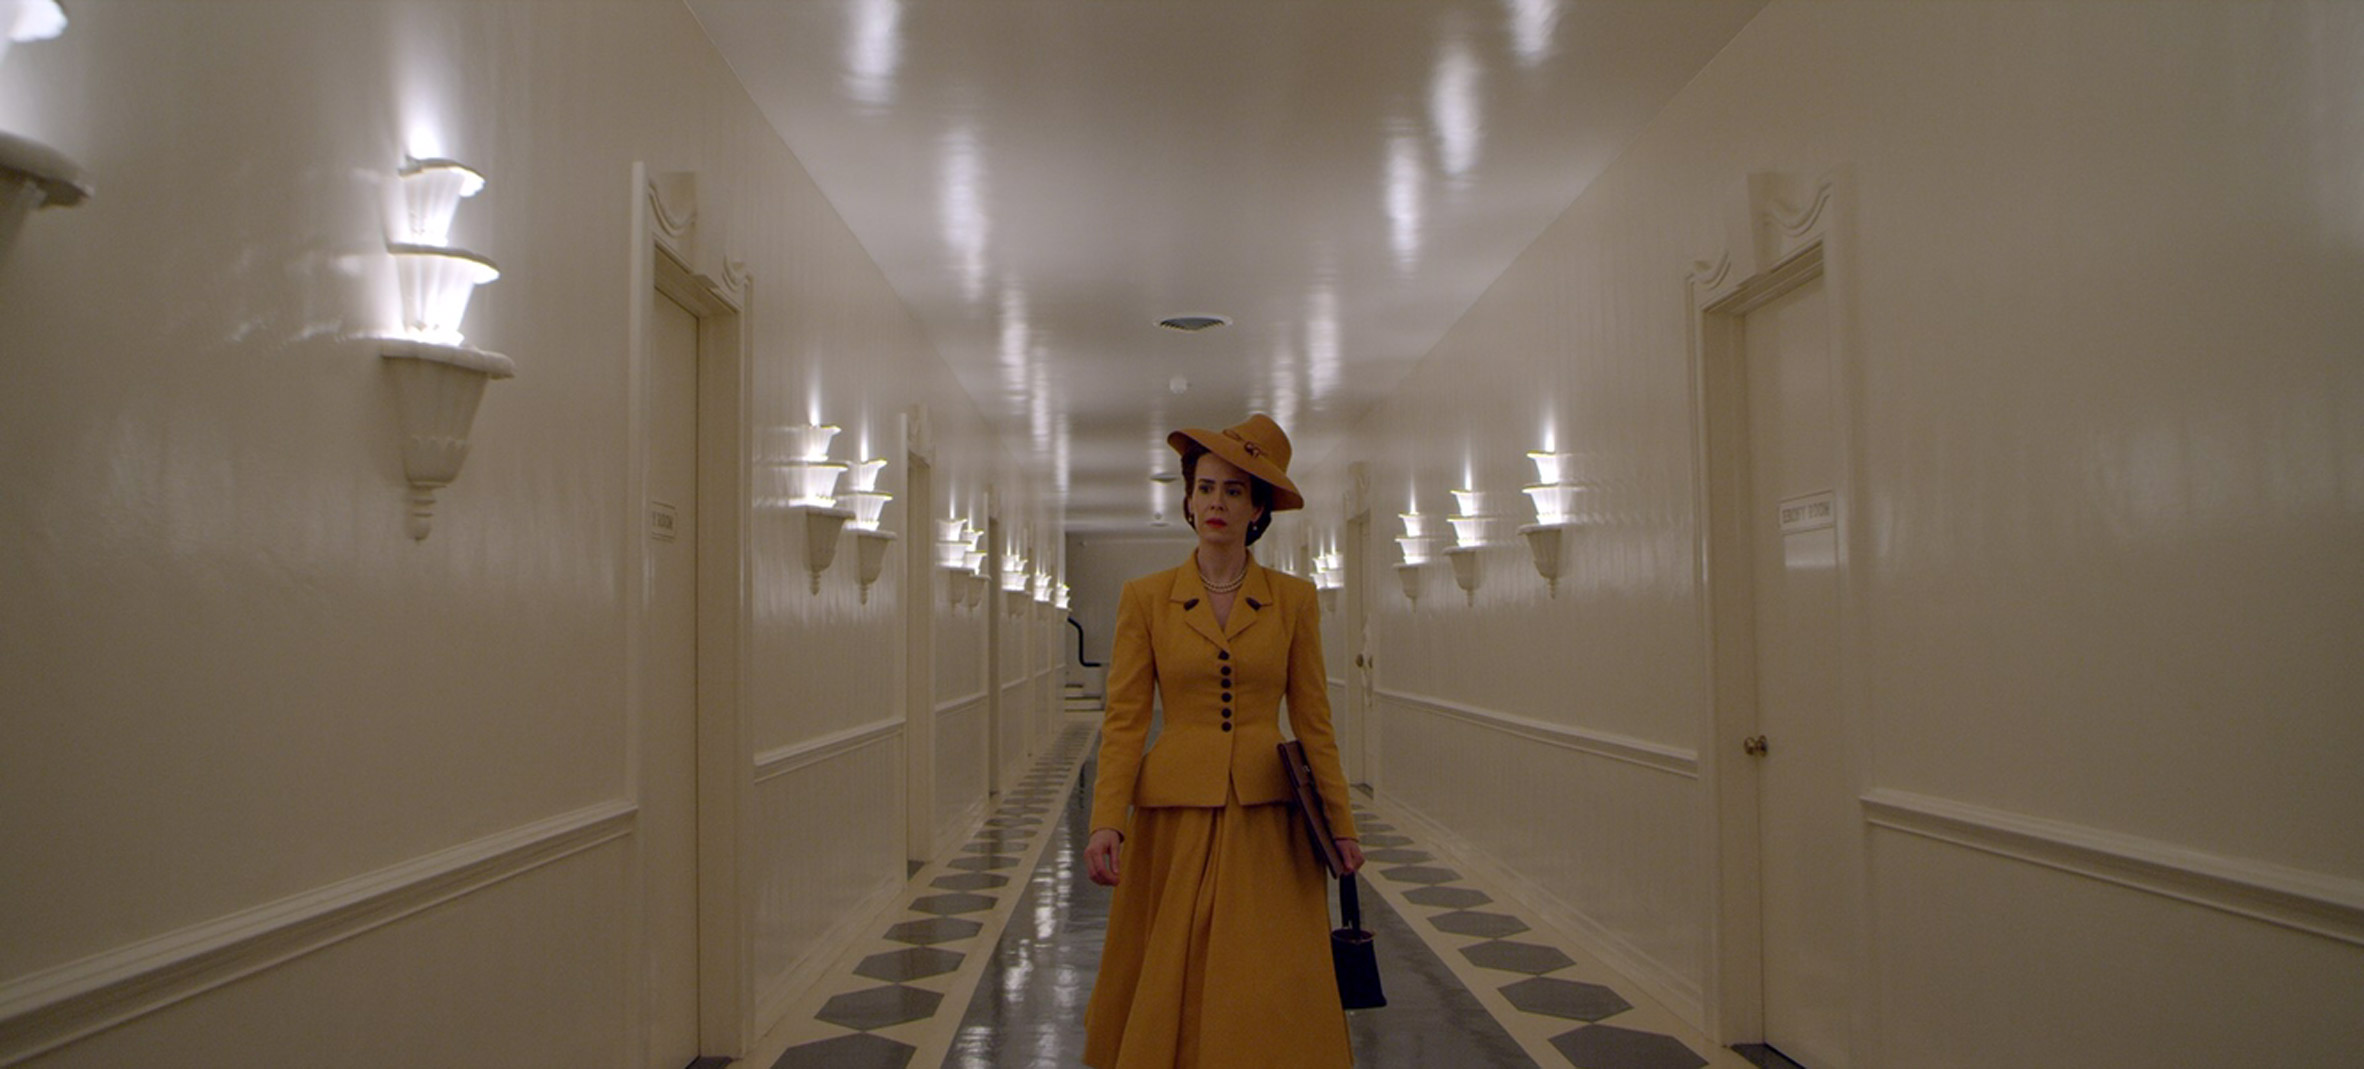 Lucia State Hospital hallway from Netflix's Ratched